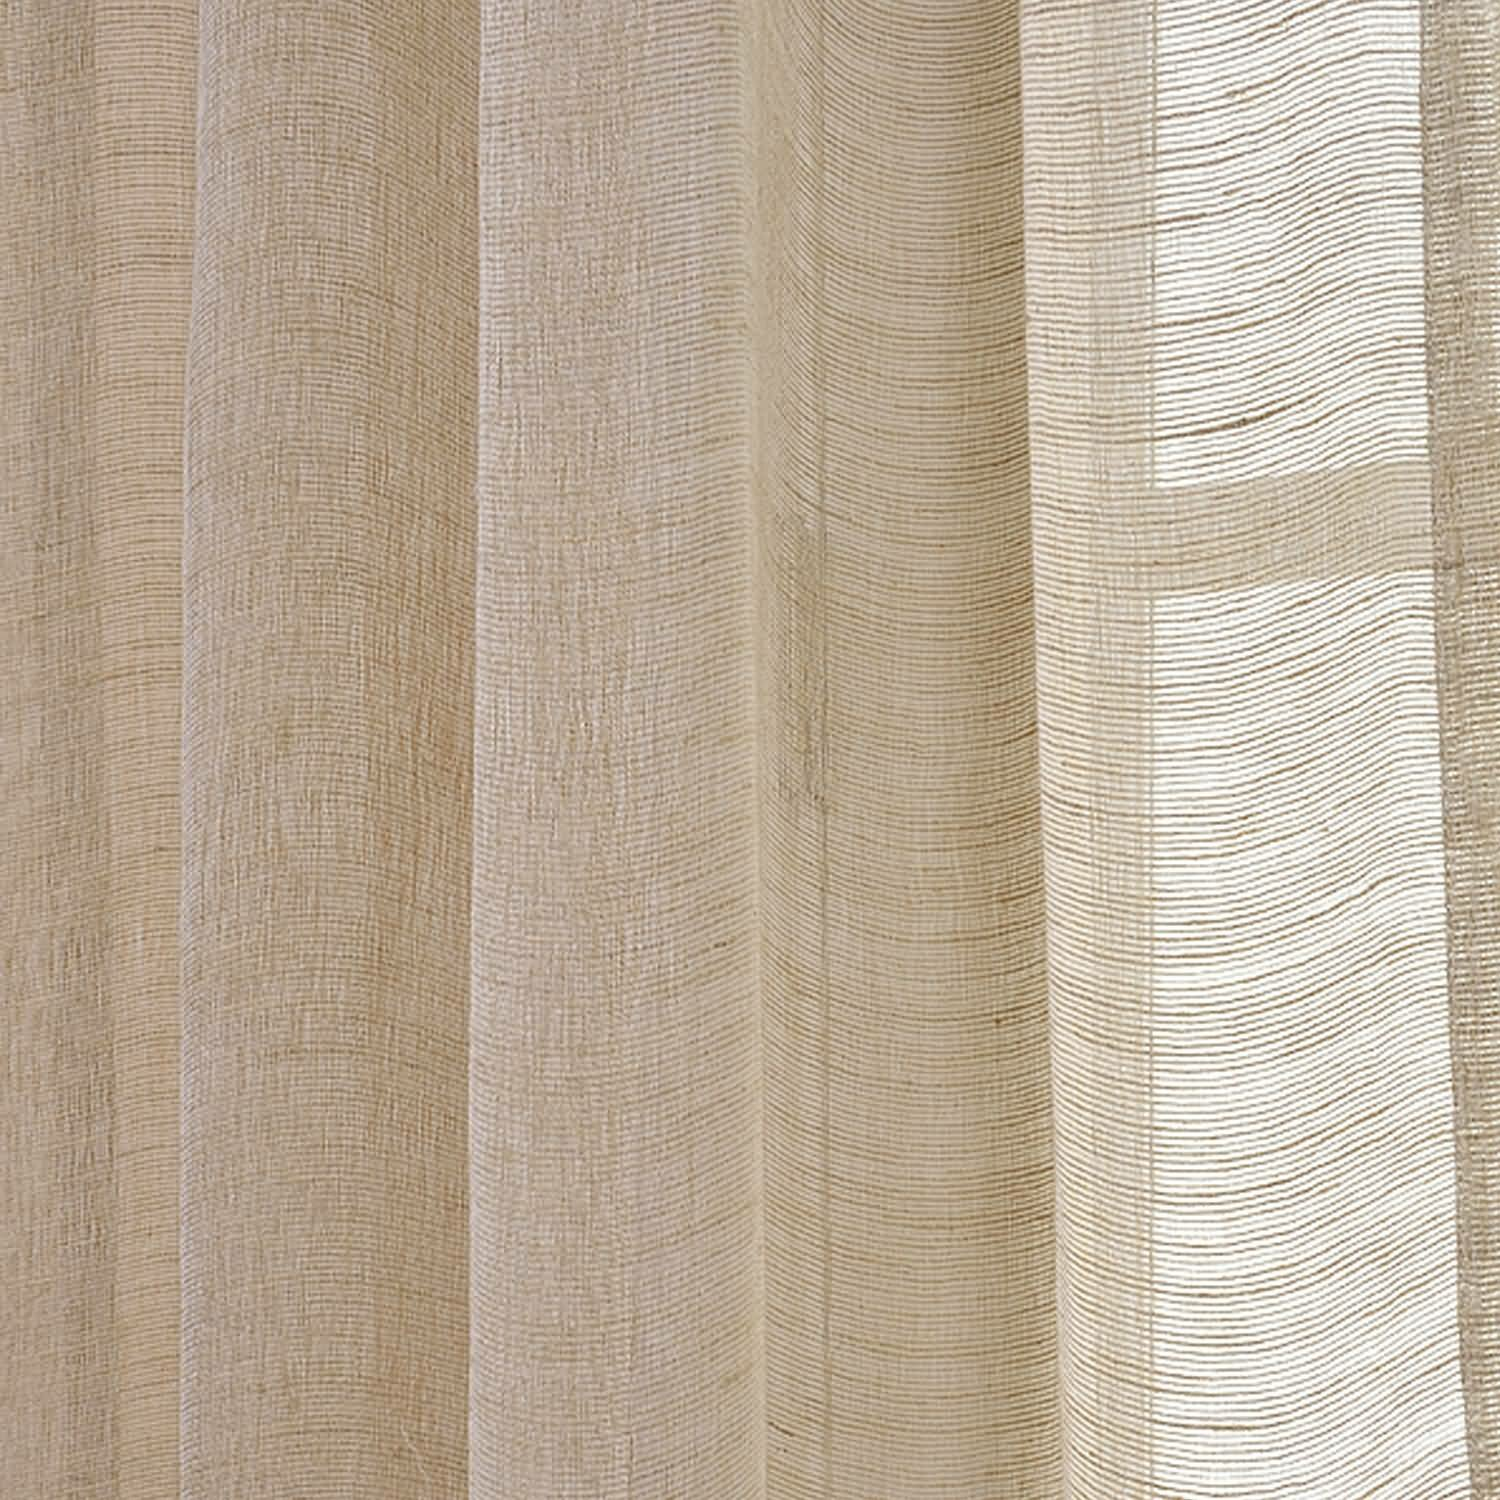 Sheer curtain texture - Half Price Drapes Open Weave Linen Sheer Curtain